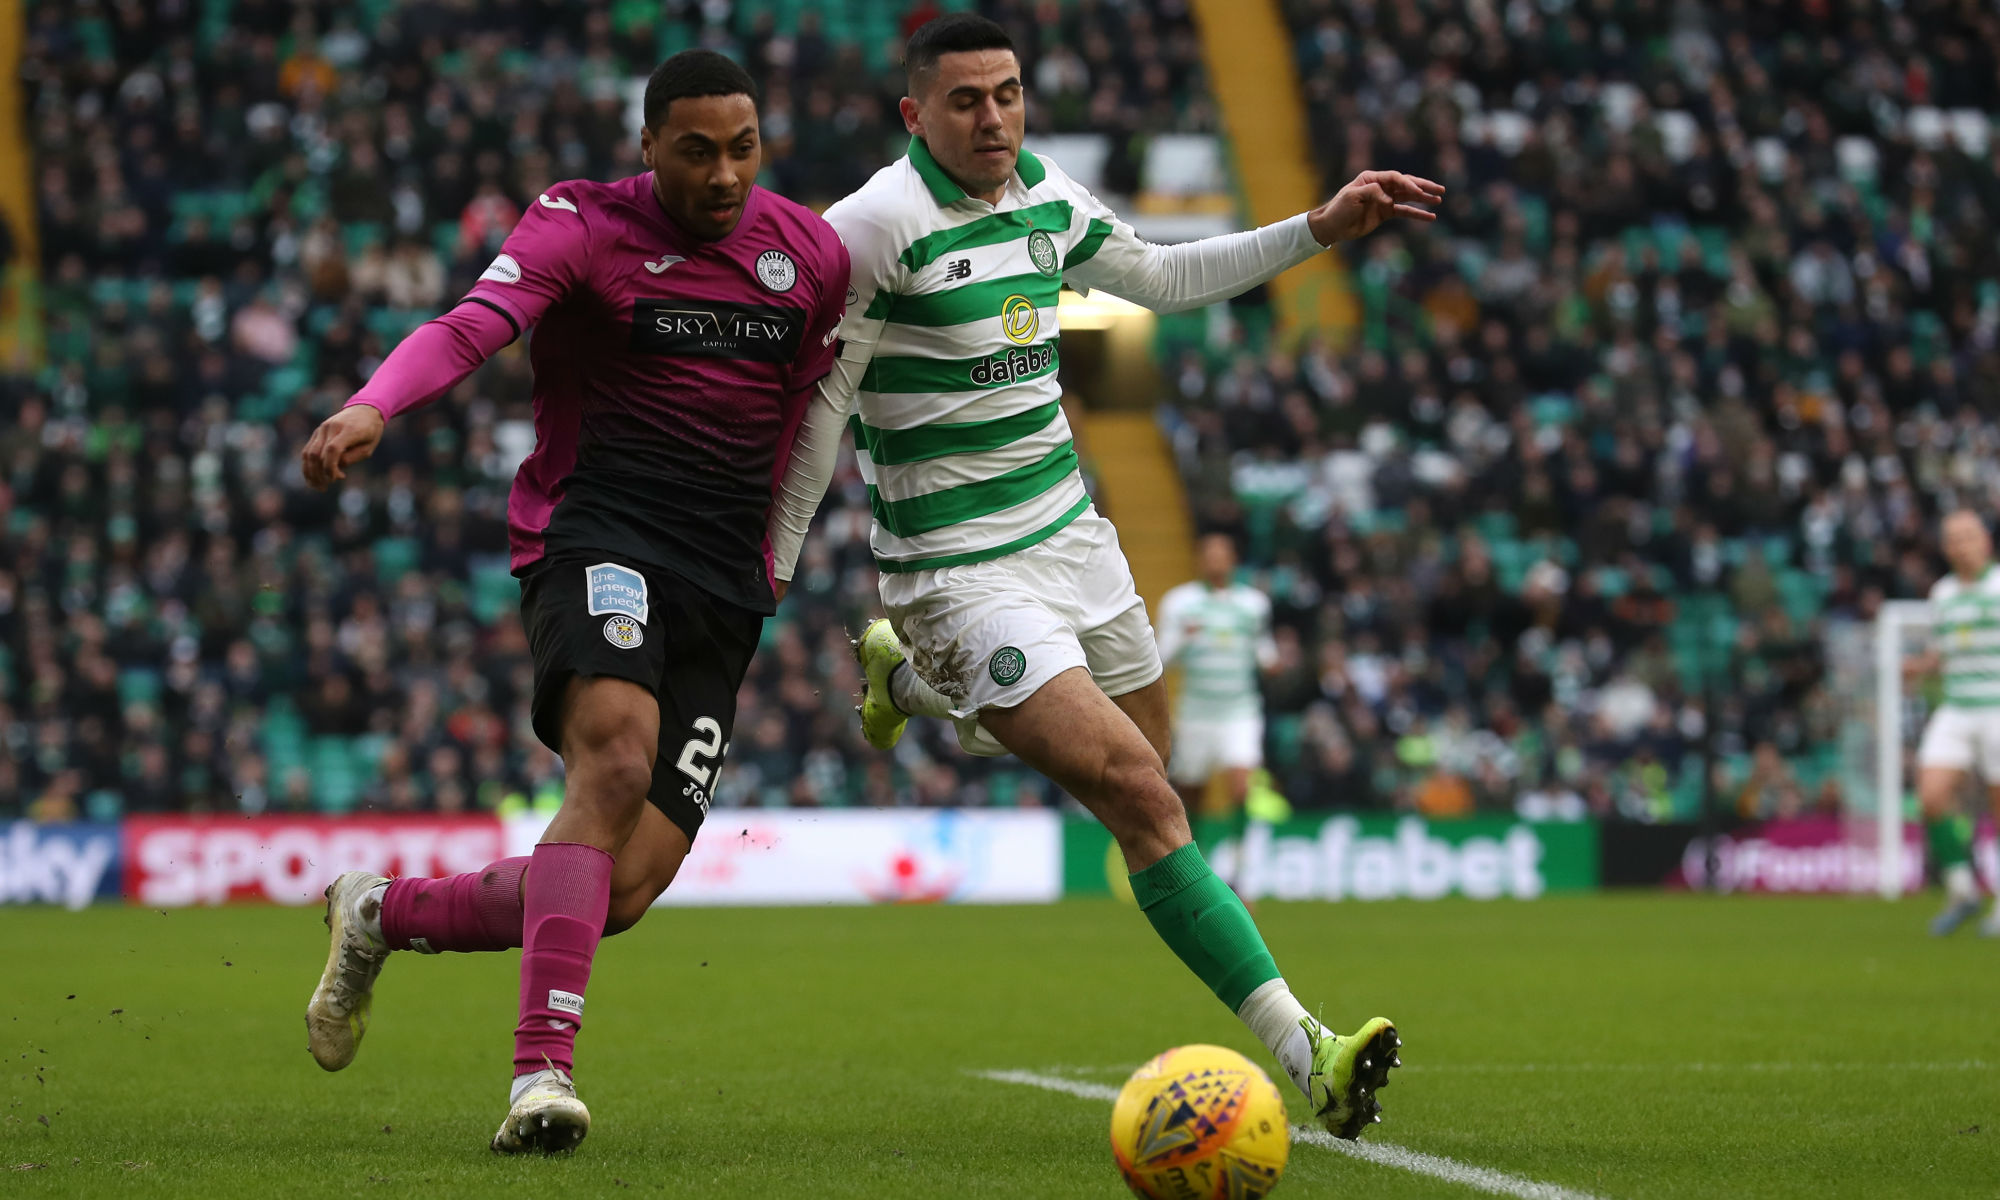 Celtic and Socceroos playmaker Tom Rogic battles for the ball against St Mirren